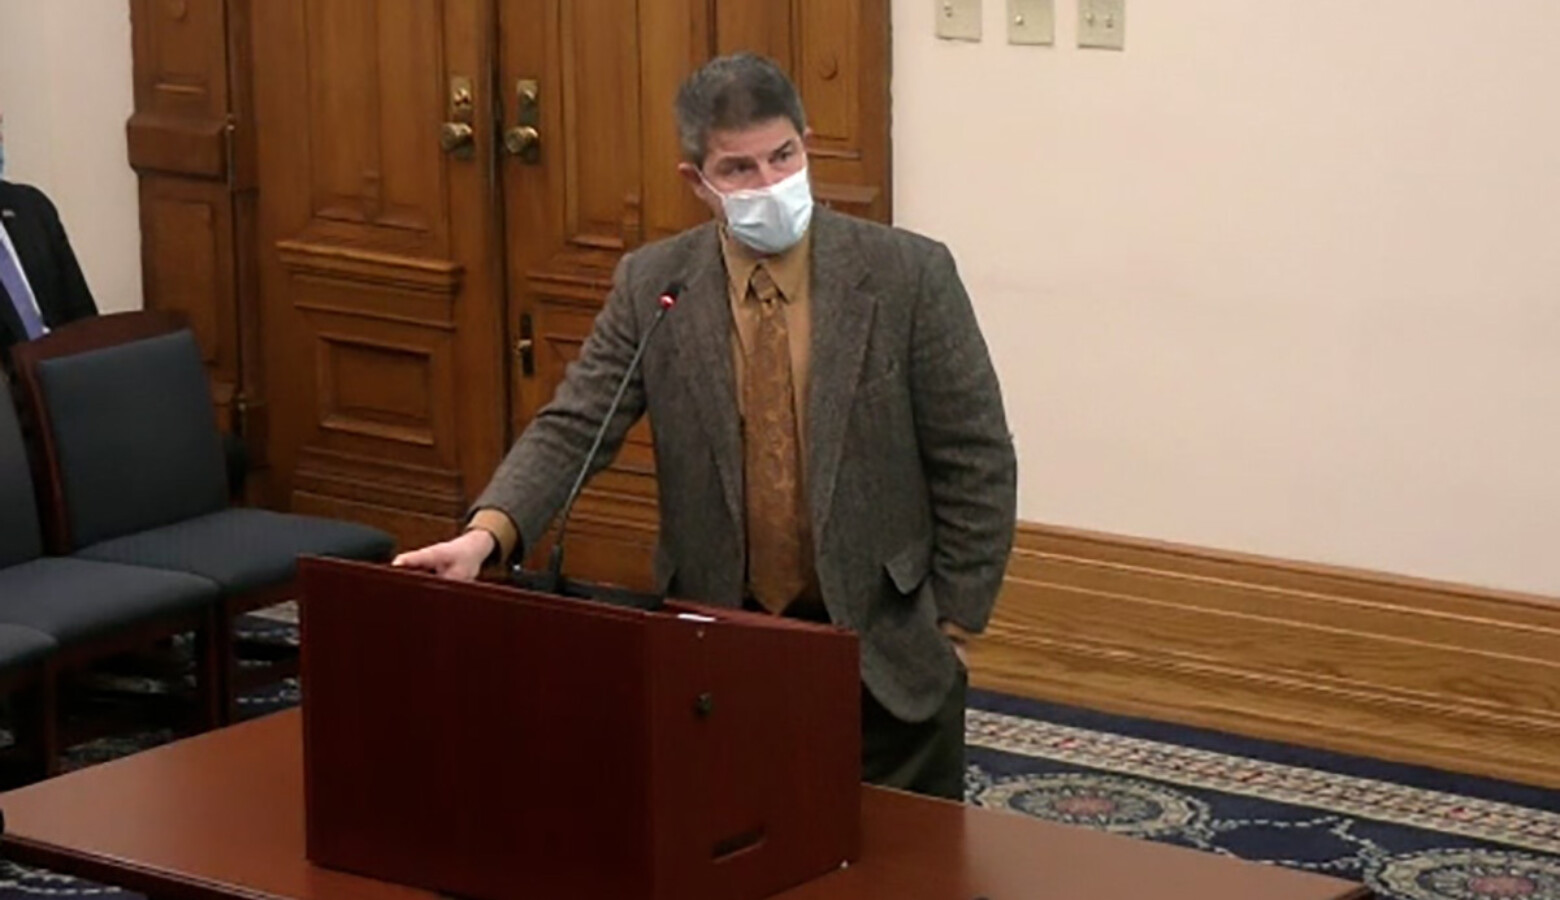 Senate President Pro Tem Rodric Bray (R-Martinsville) said the improving COVID-19 numbers across the state prompted his chamber to undo some precautions it took this session.